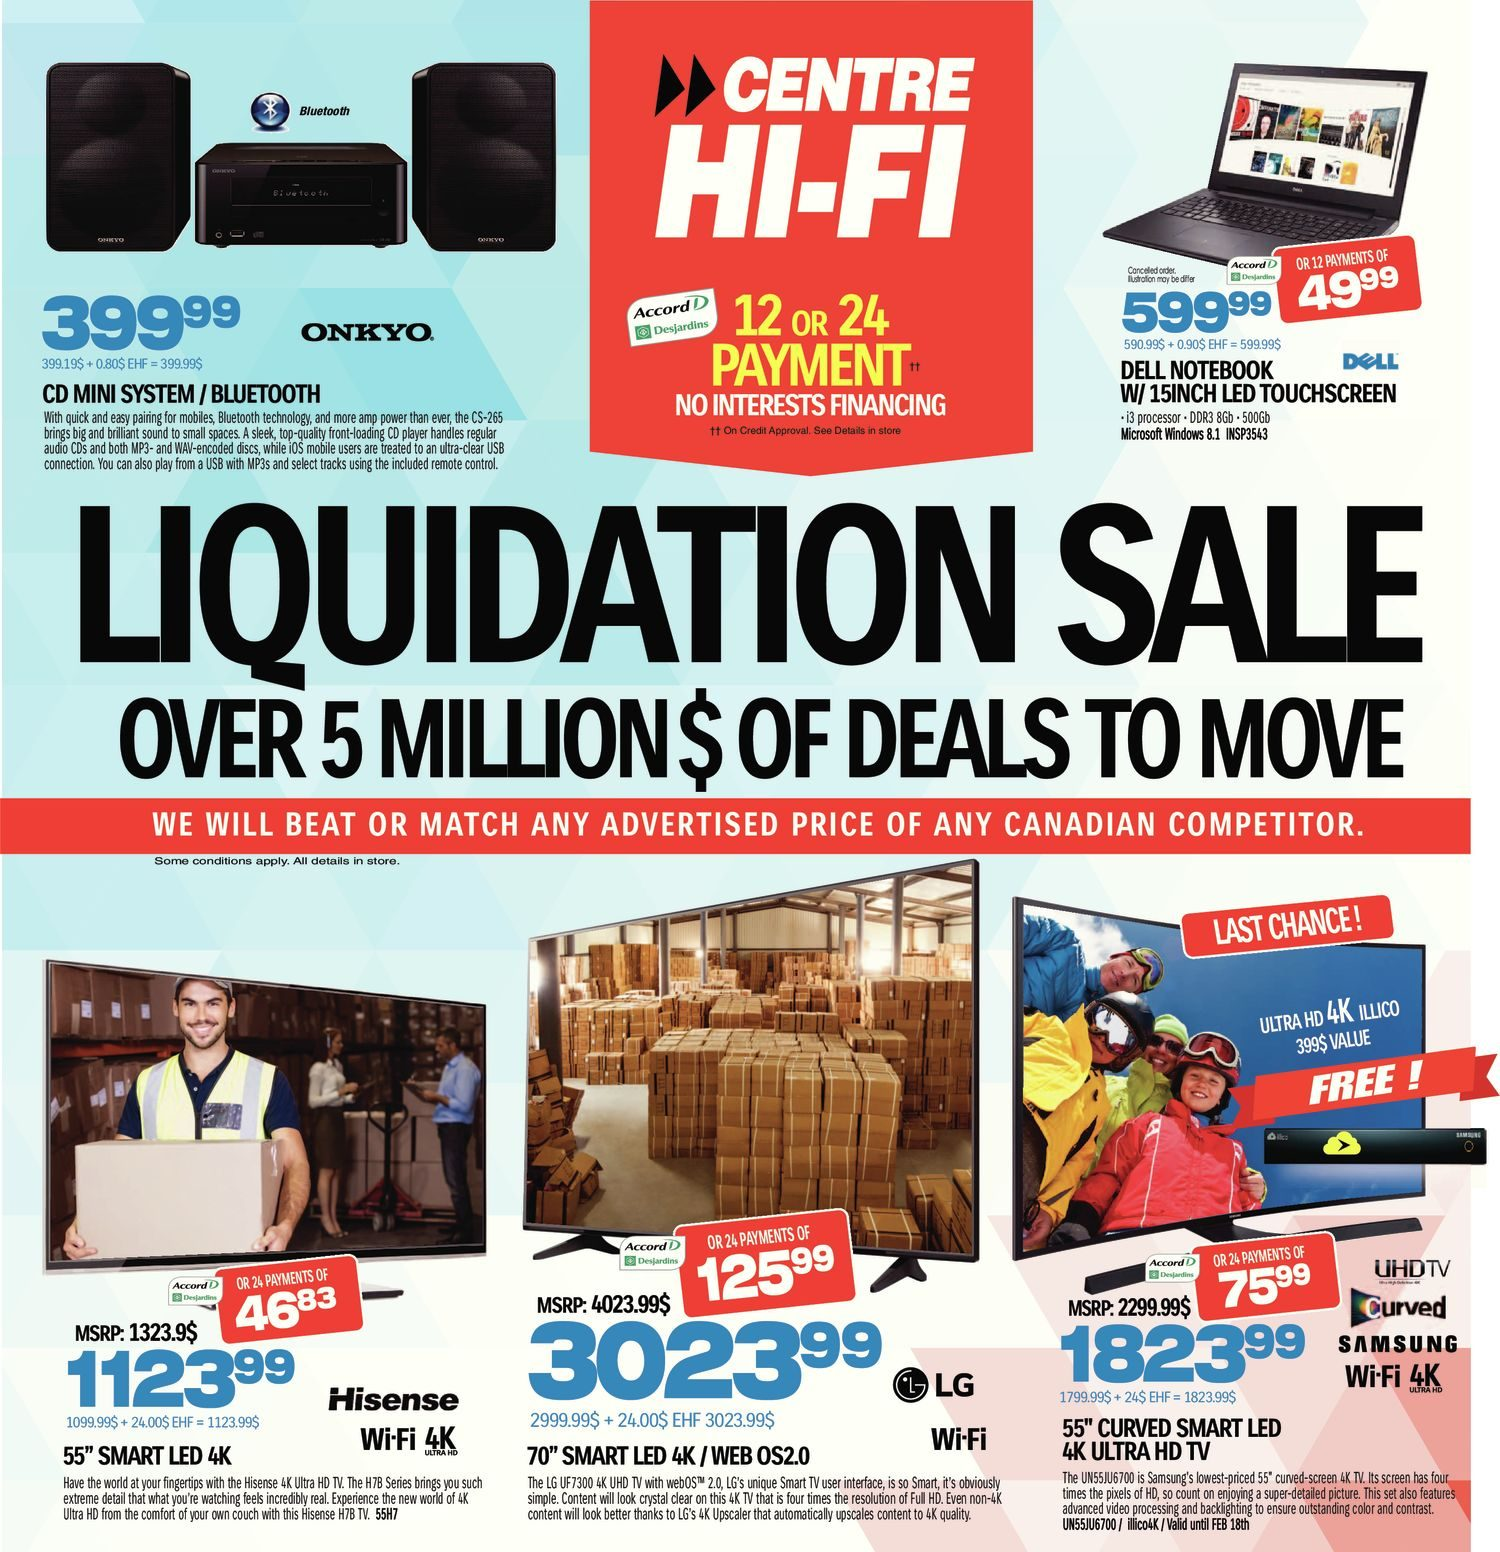 Liquidation World Flyer Centre Hifi Weekly Flyer Weekly Liquidation Sale Feb 18 24